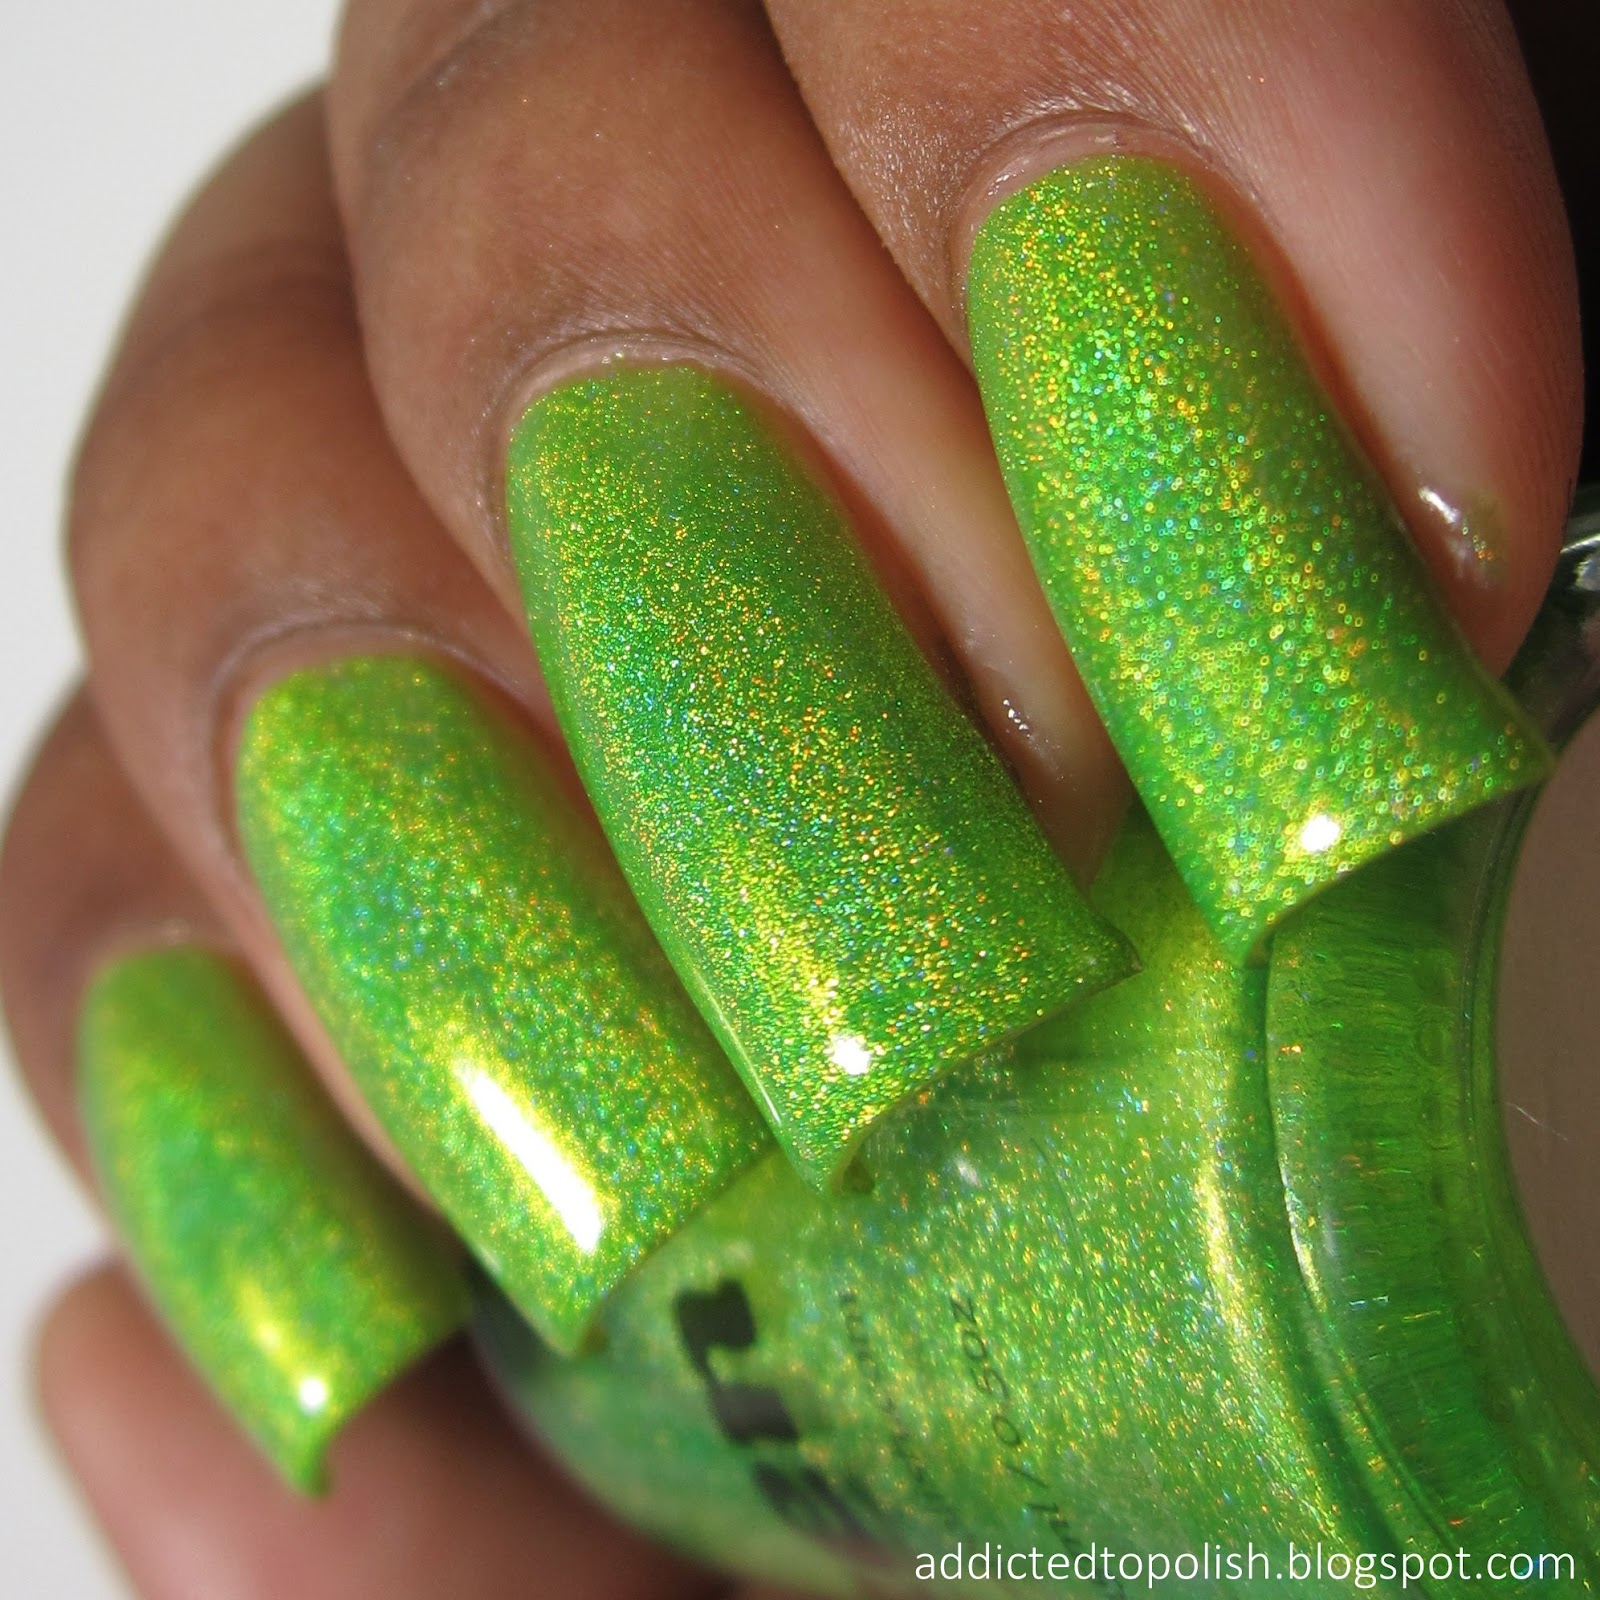 Smitten-Polish-Electric-Lime-Neon-Green